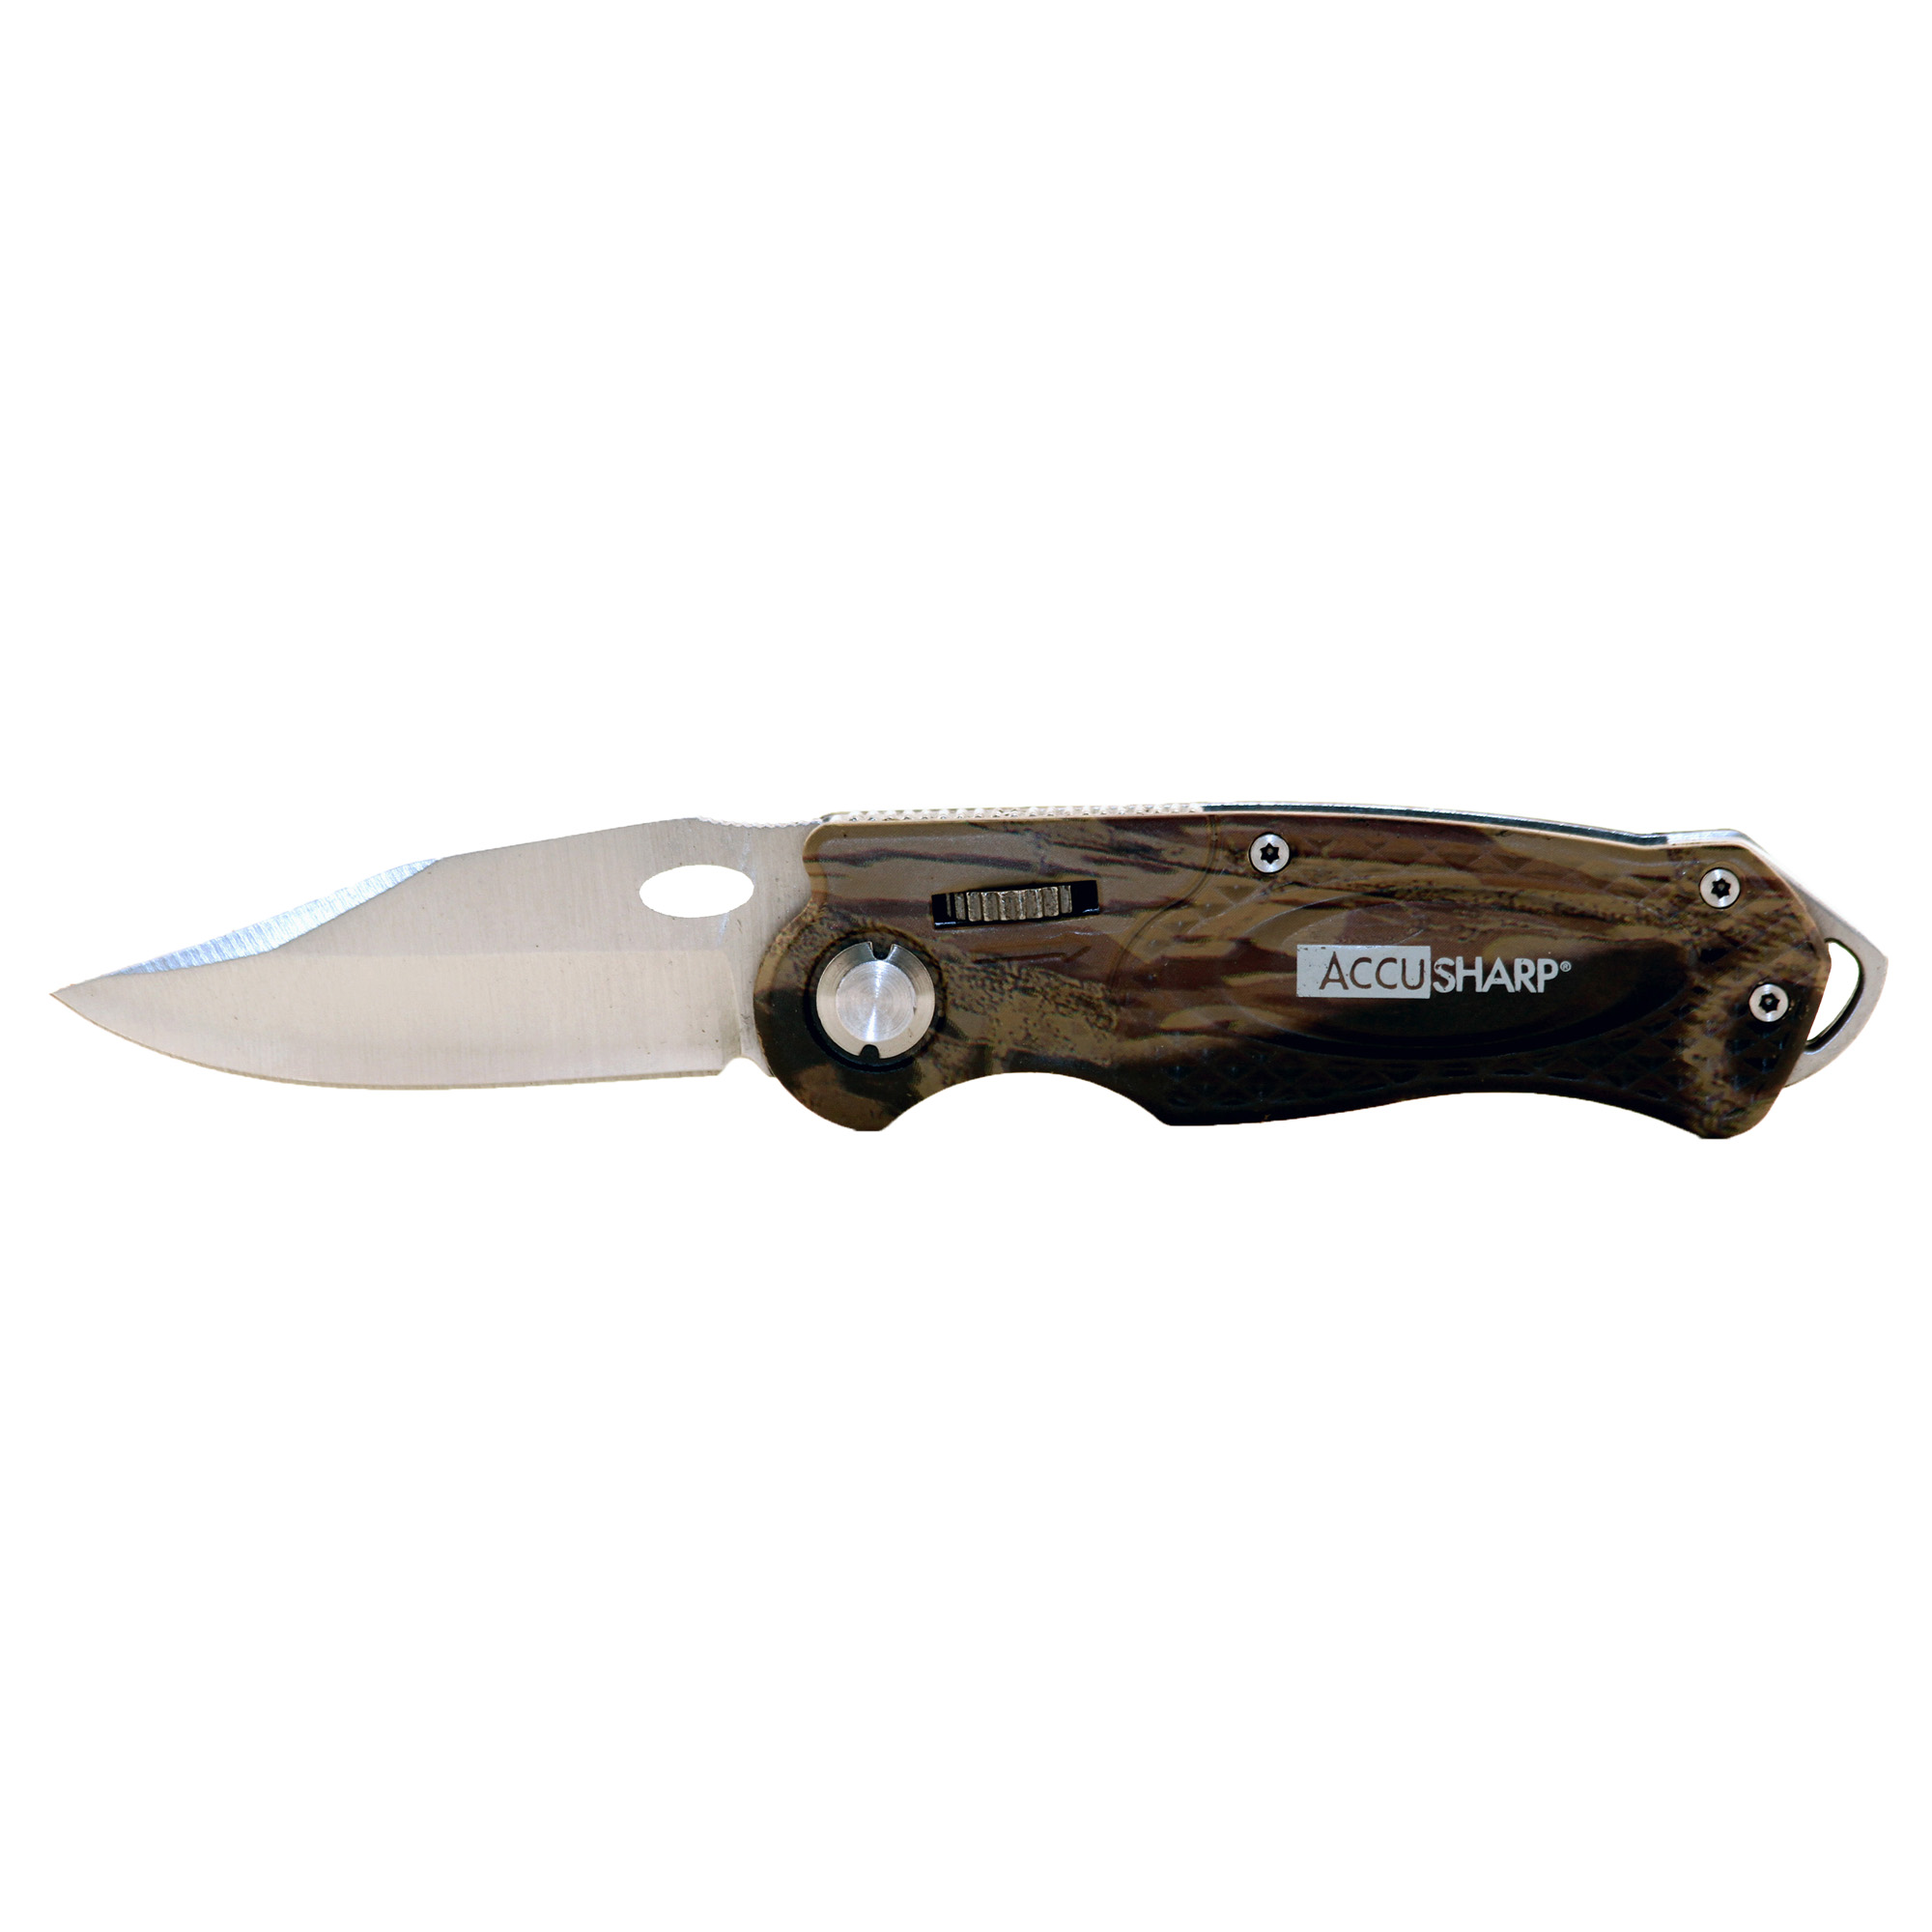 Accusharp Sport Knife Camo